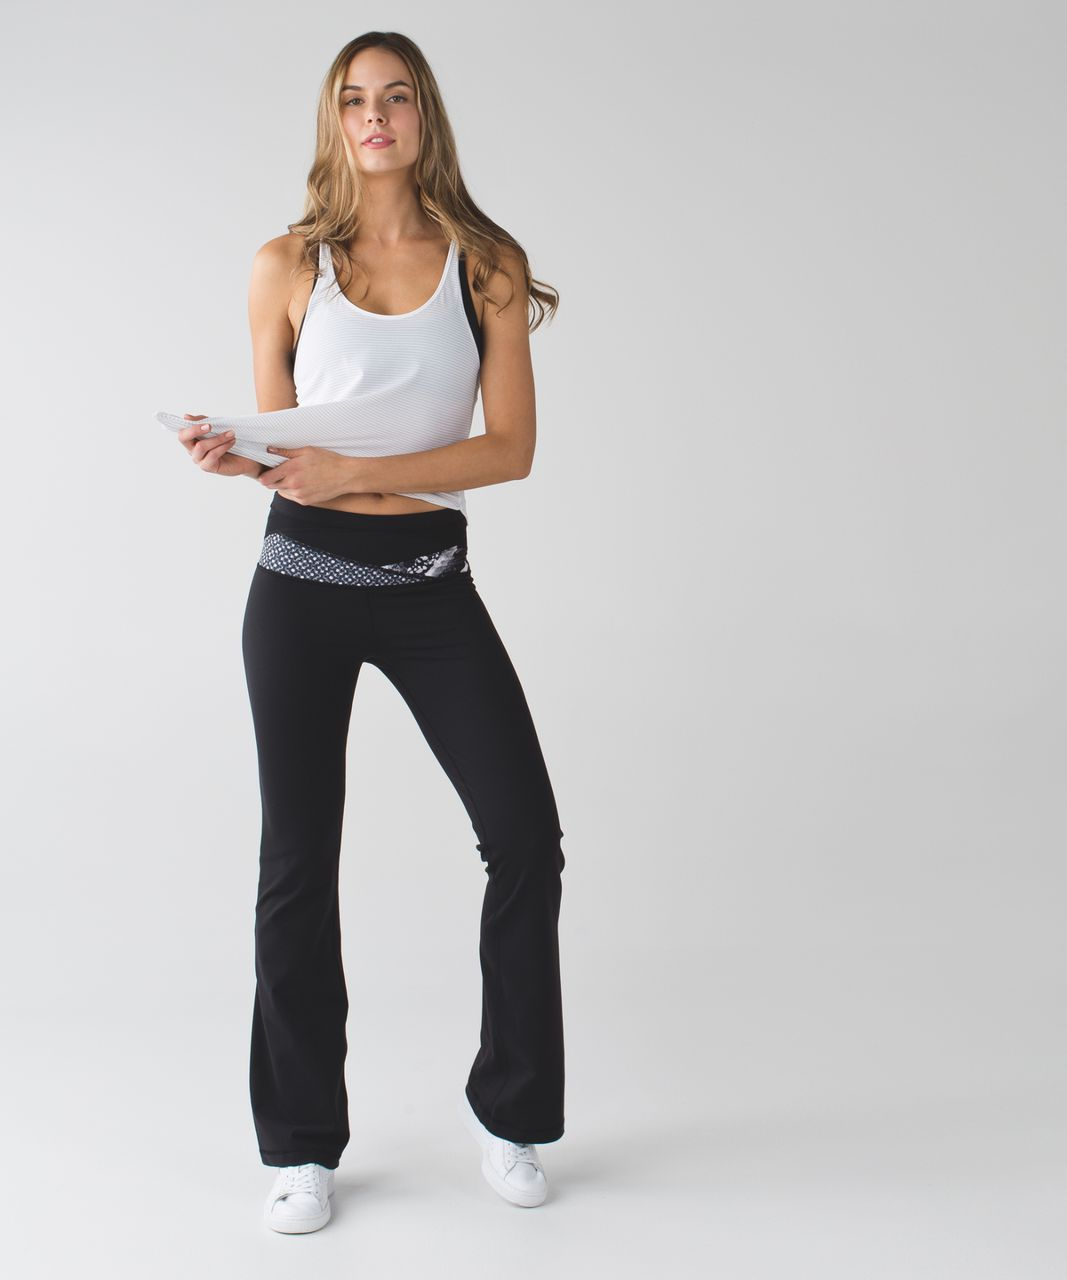 Lululemon Groove Pant III (Regular) *Full-On Luon - Black / Millie Mesh White Black / Static Mist White Black